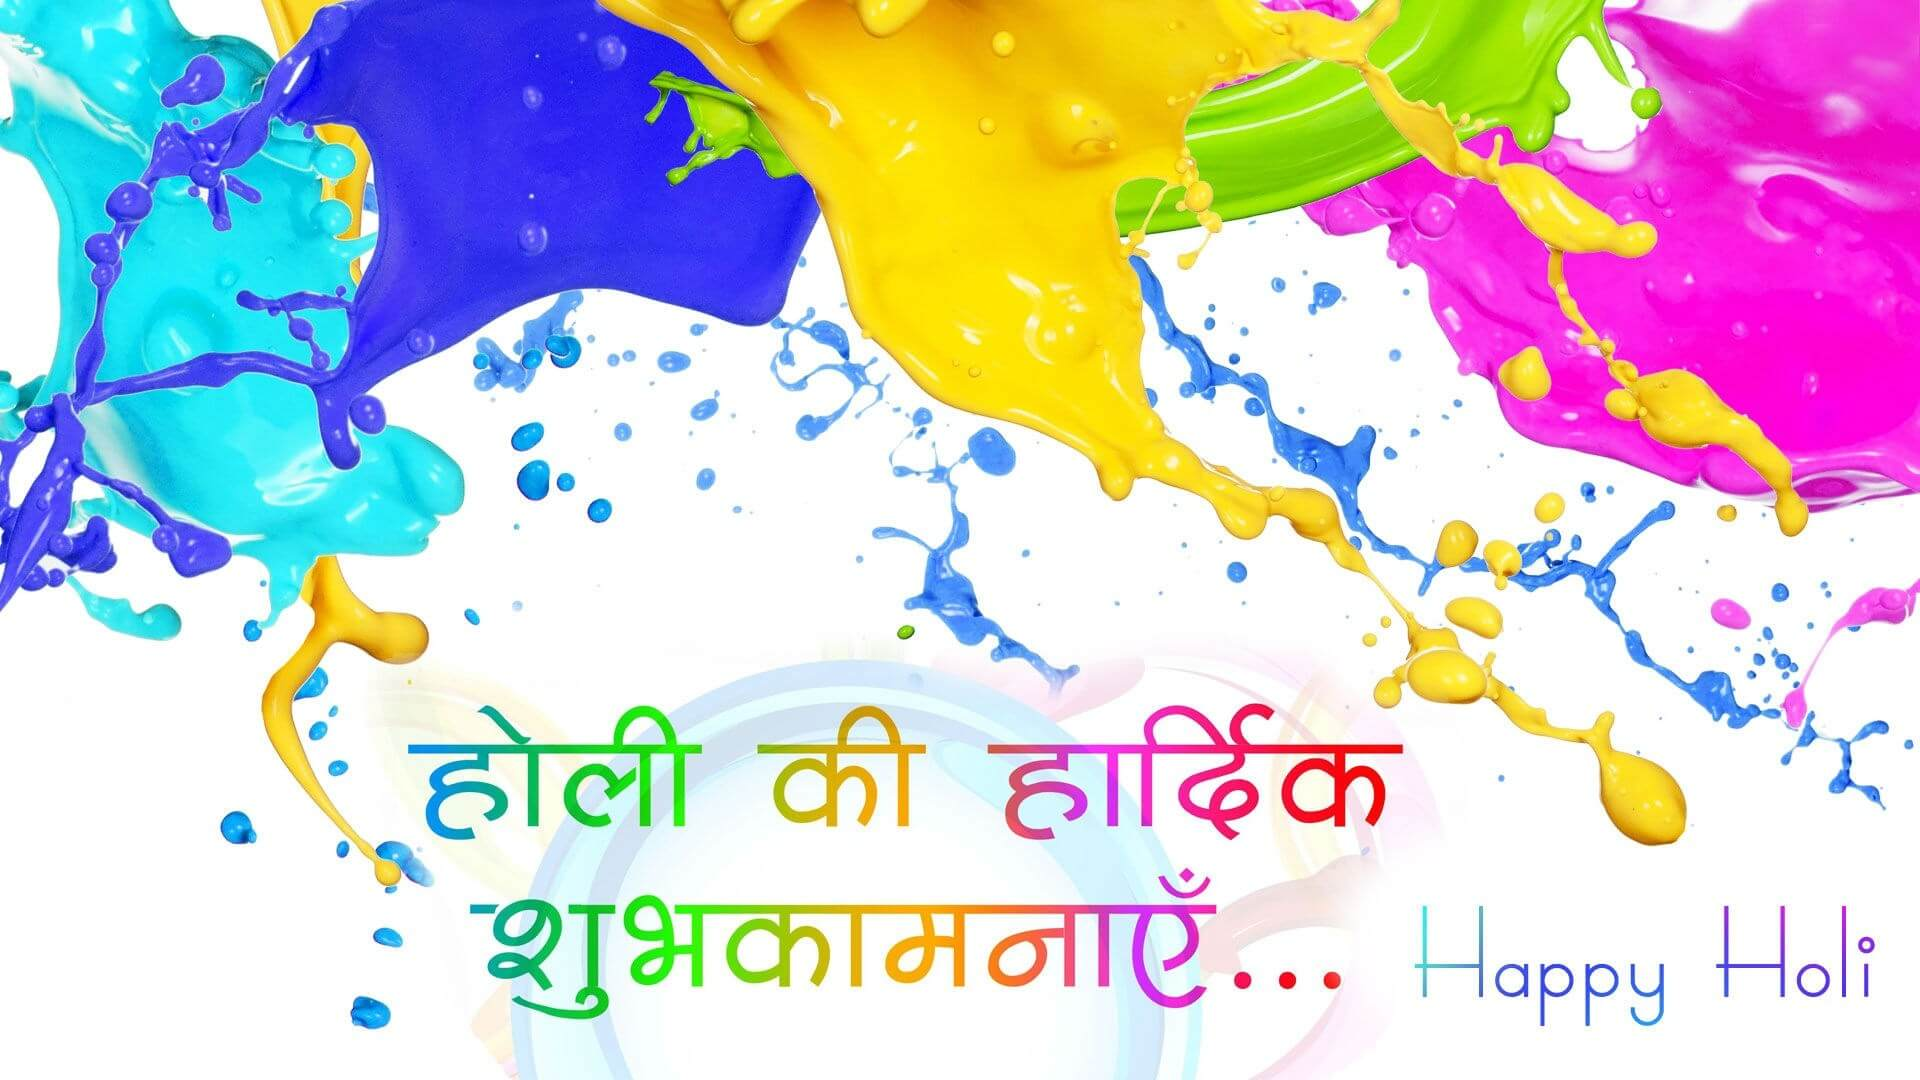 holi images in hindi   holi images in hindi 2361237923542368 2340238123512380236123662352 23462352 23302367234023812352 23402360238123572368235223752306 full hd size 1024times768